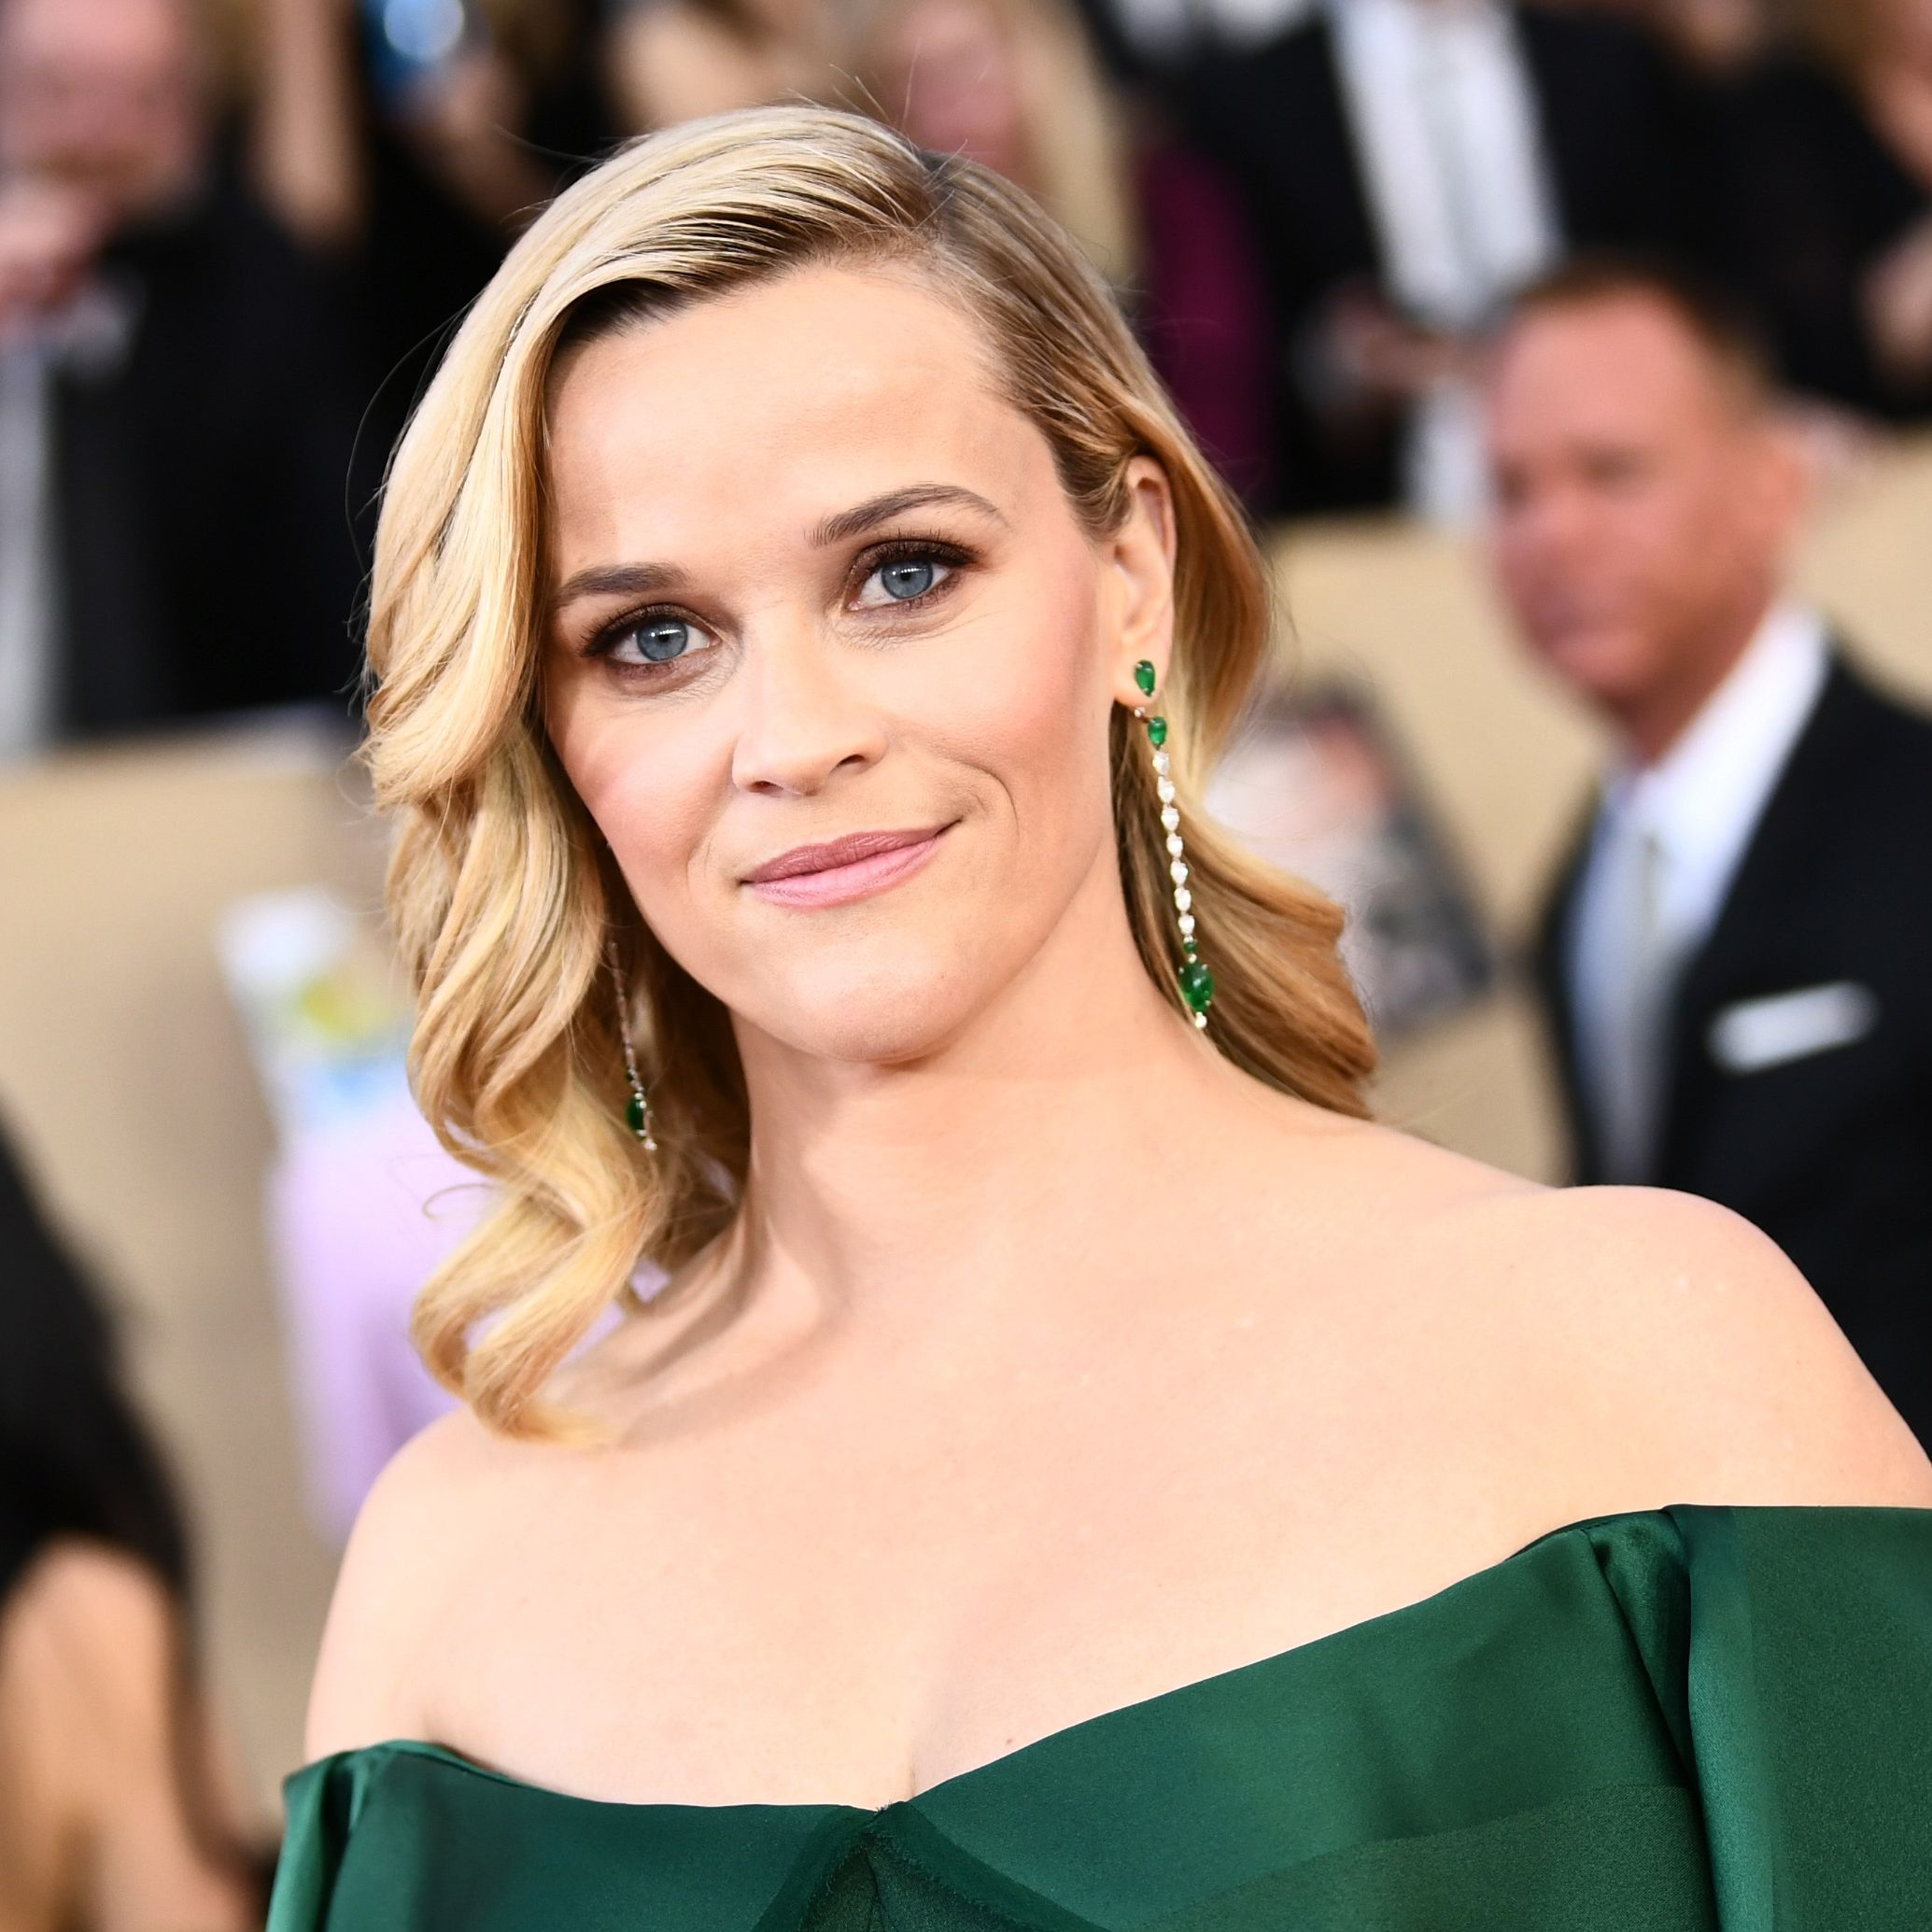 """Reese Witherspoon Admits She Loves Her Gray Hair and Fine Lines: """"I So Prefer 43 to 25"""""""